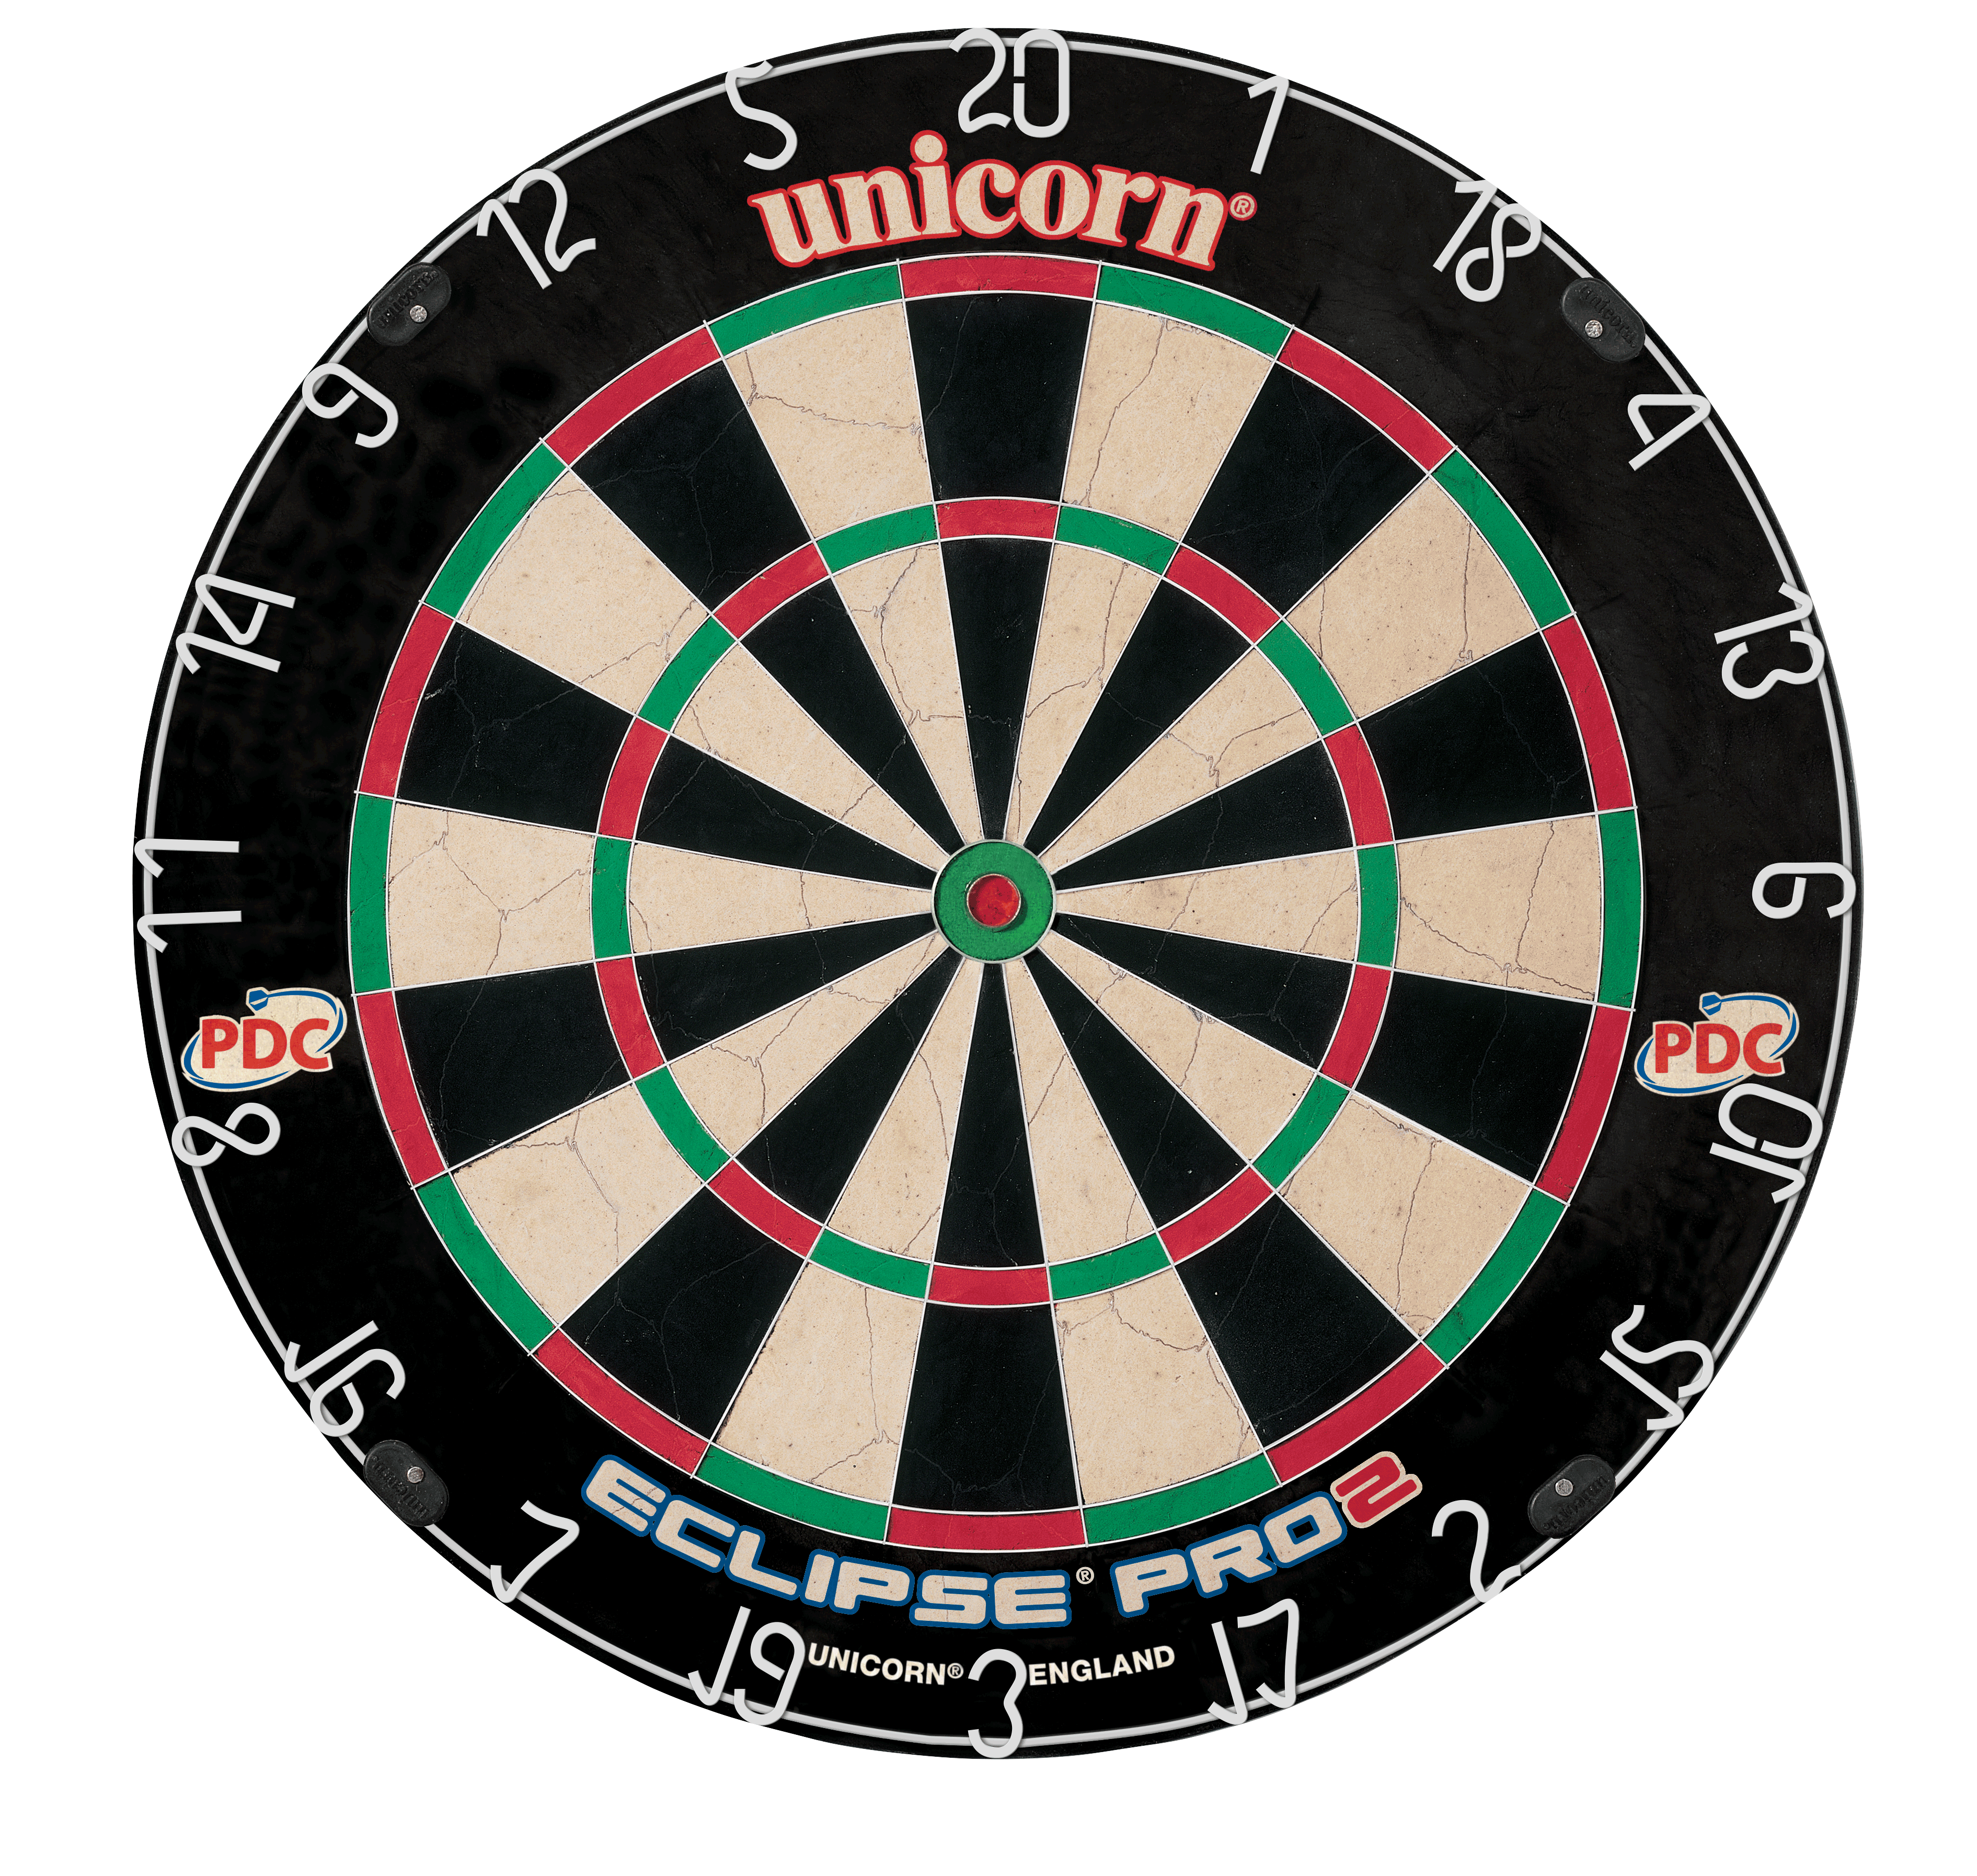 Unicorn Eclipse Pro2 DartBoard NEW 2017